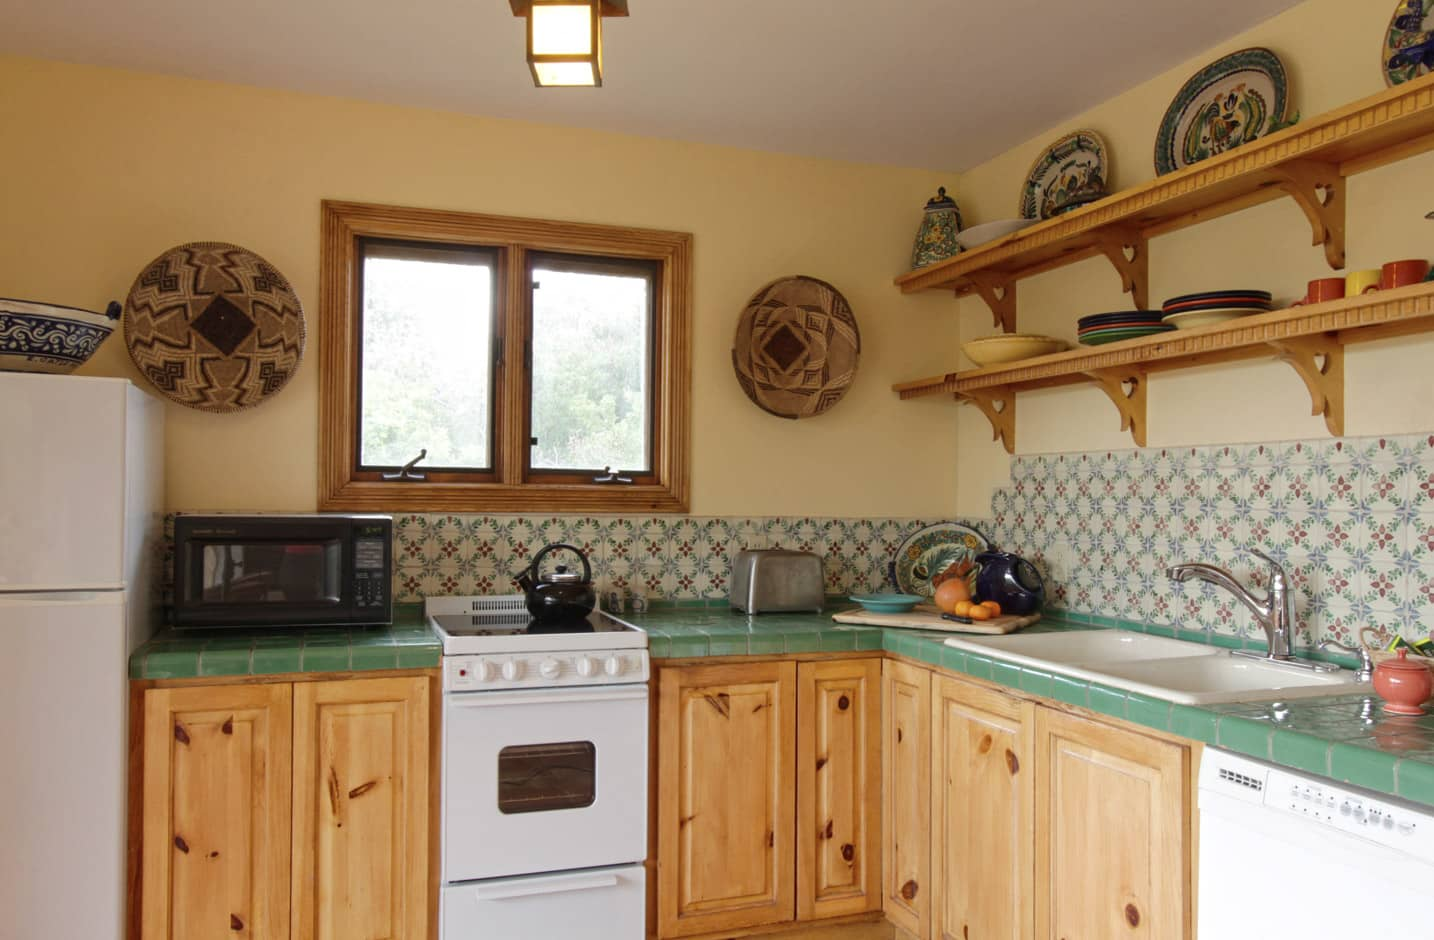 An L shaped kitchen with dishwasher, range, and window